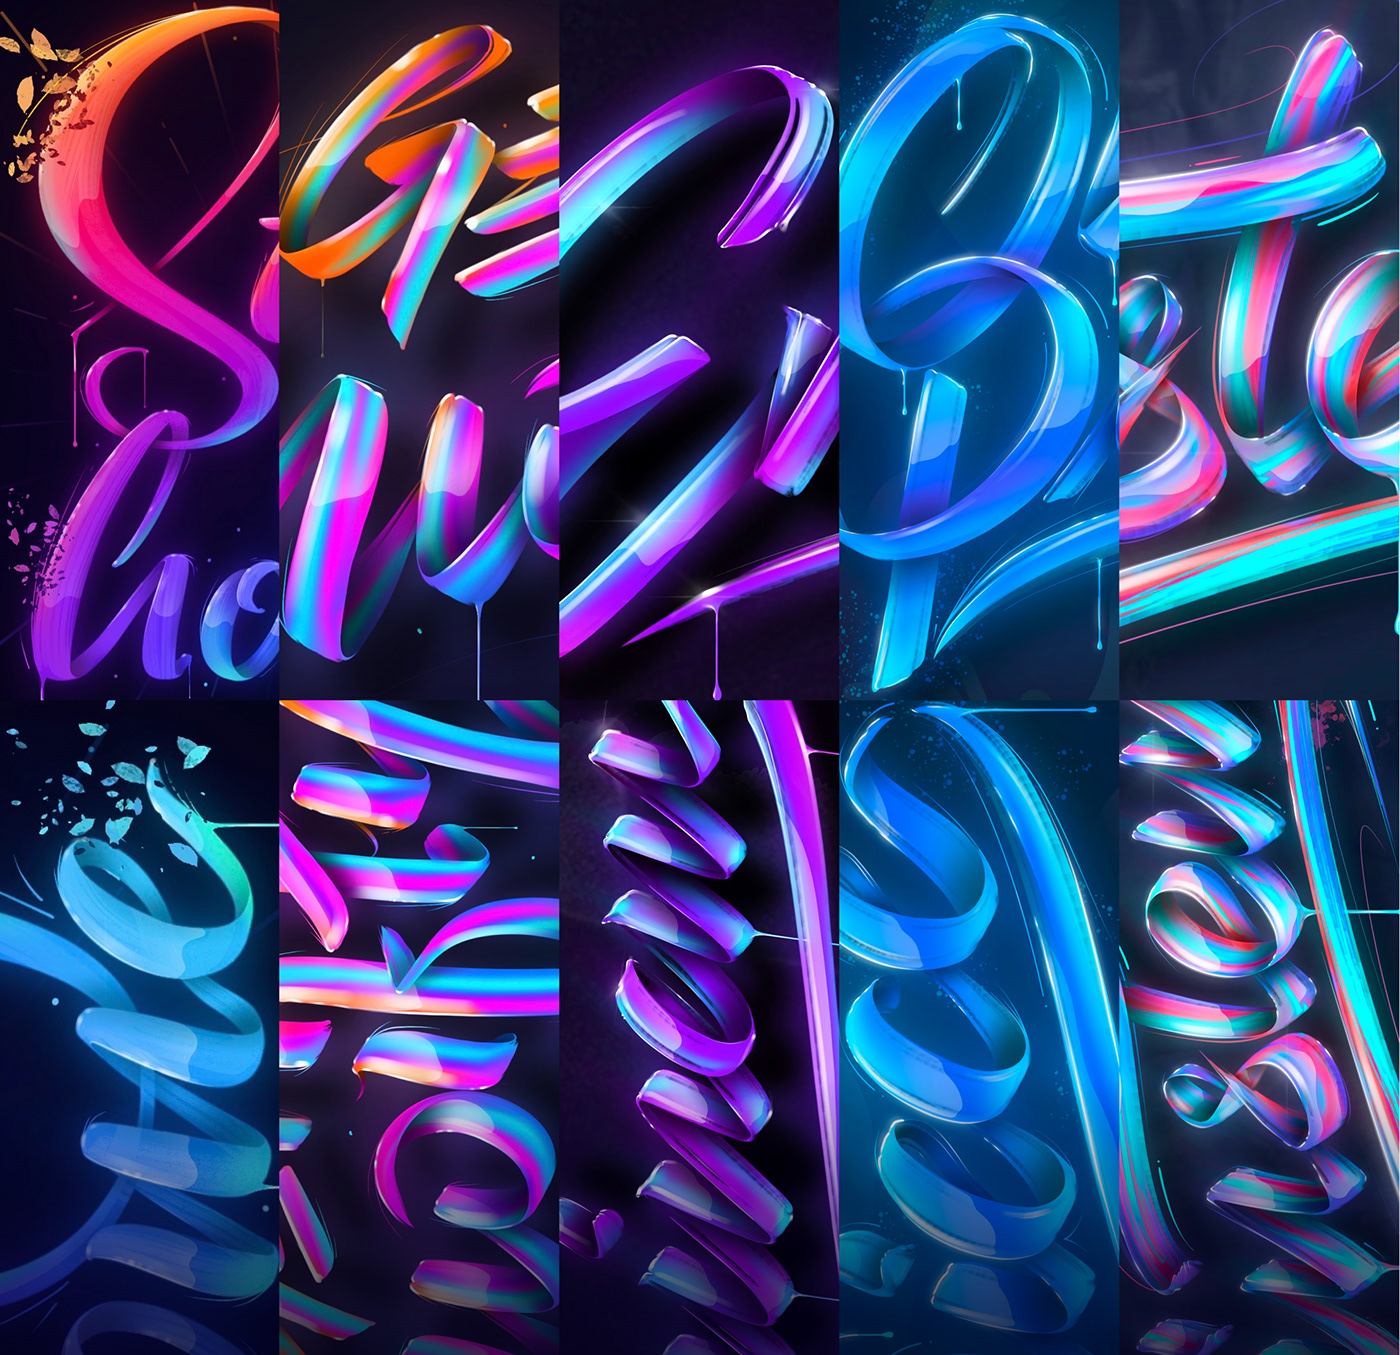 Calligraphy   colorful Digital Art  digital calligraphy graphic design  iPad Lettering lettering strokes type design typography